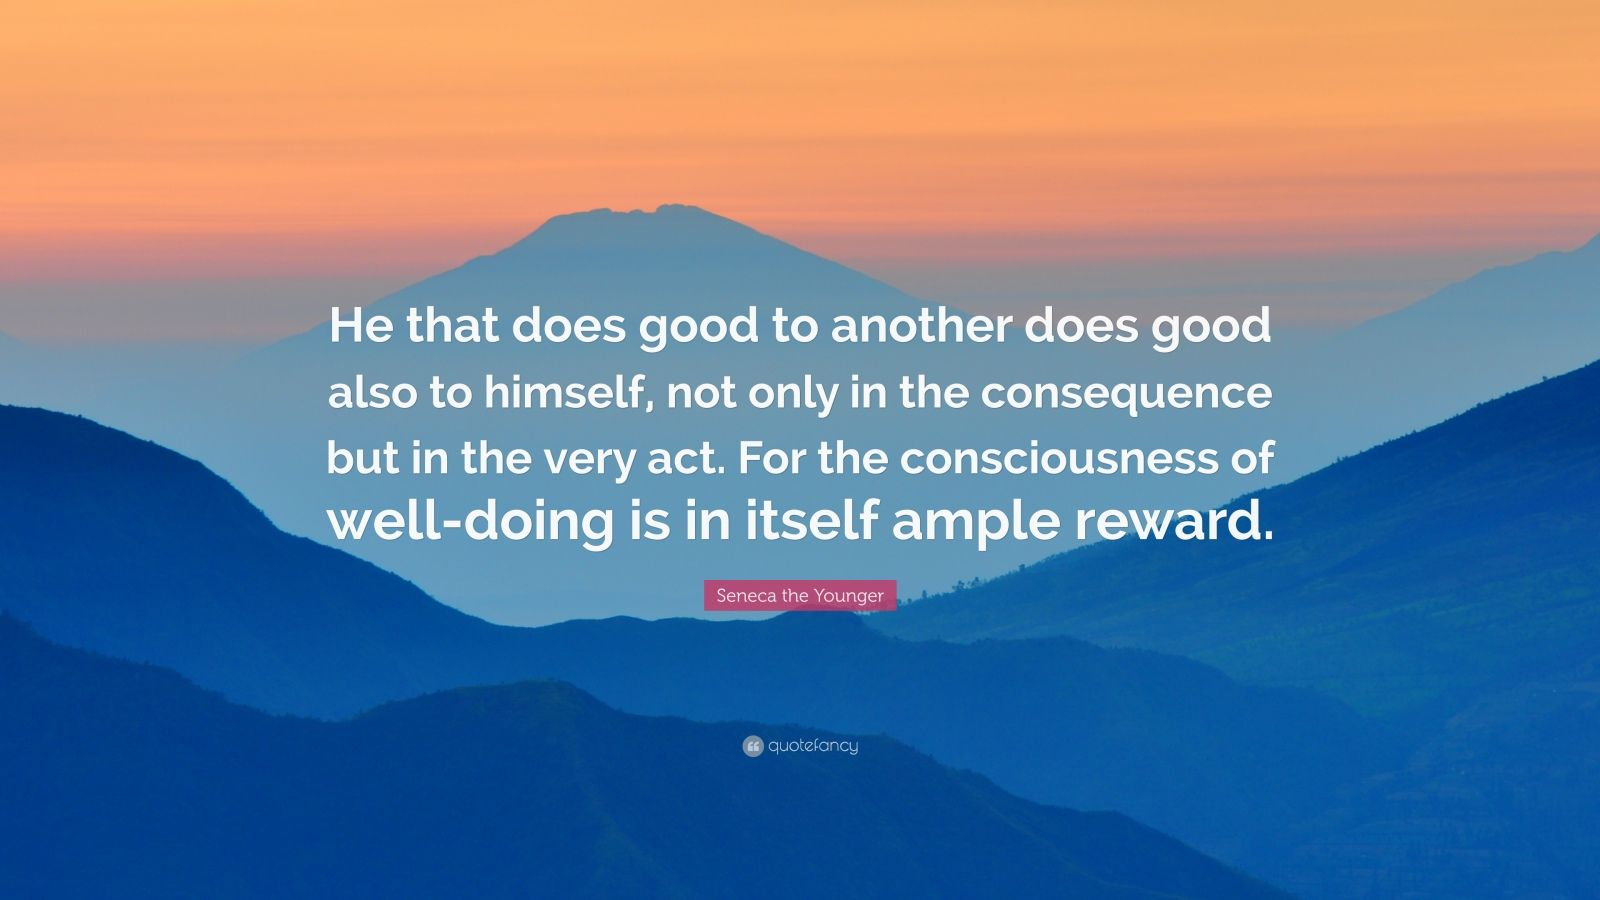 """Seneca the Younger Quote: """"He that does good to another does good also to himself, not only in the consequence but in the very act. For the consciousness of well-doing is in itself ample reward."""""""